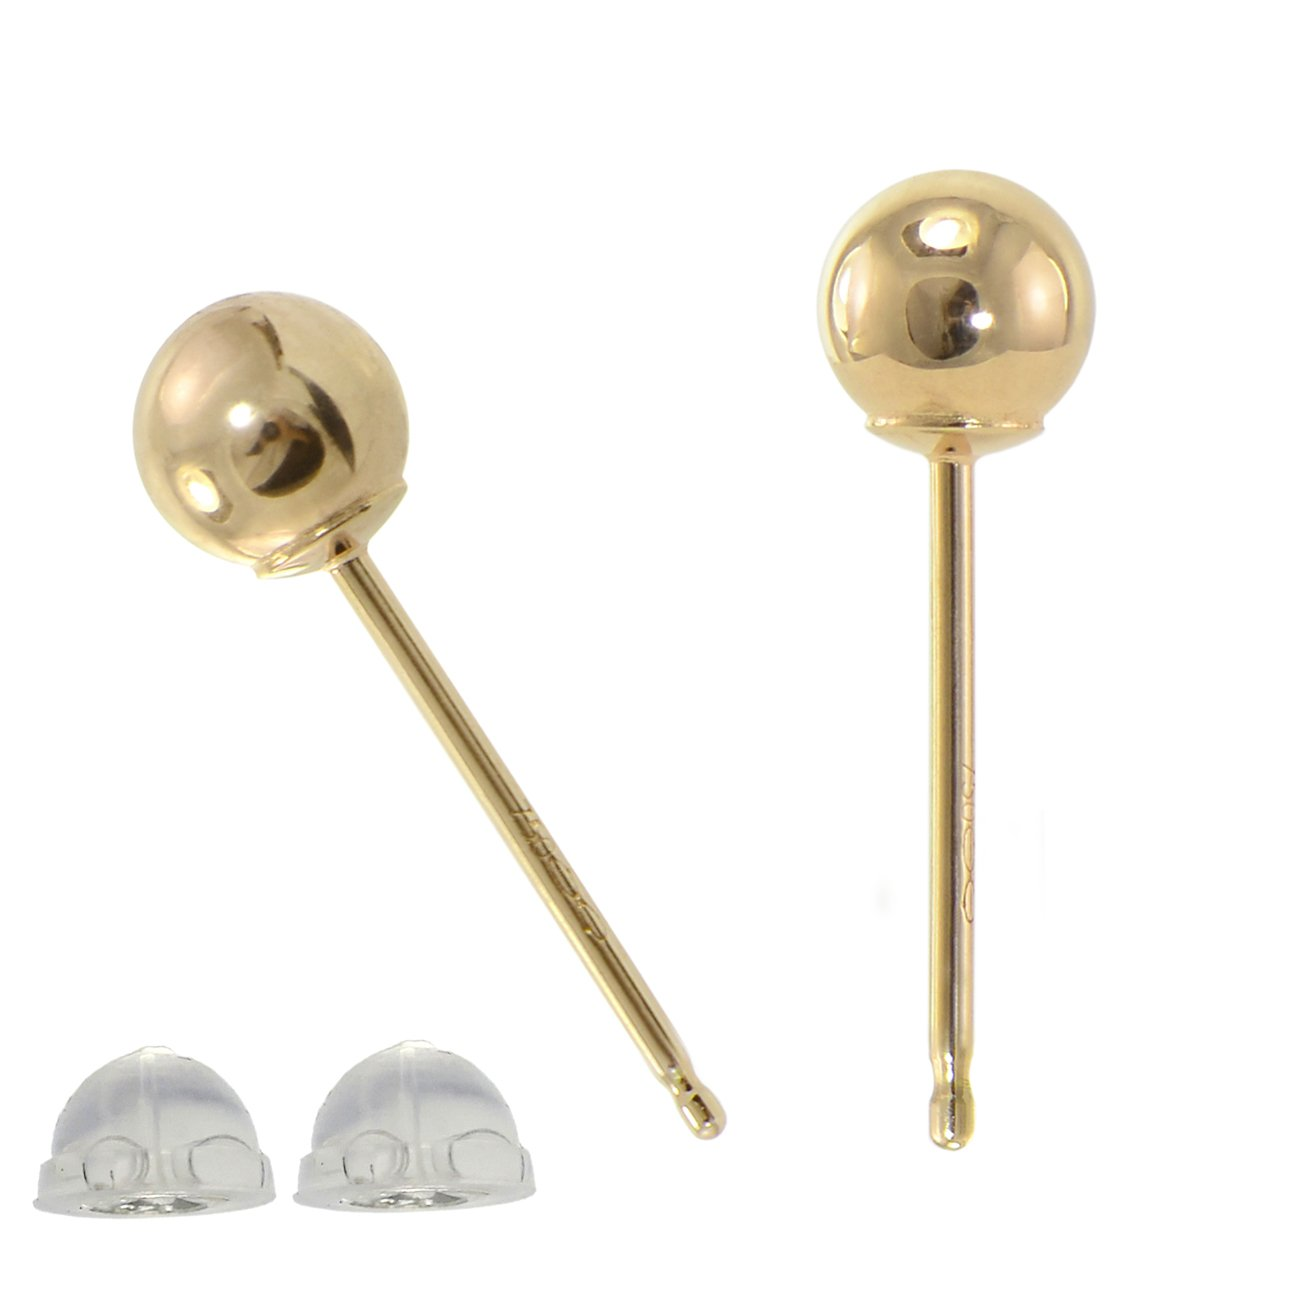 Paialco Solid 18K Yellow Gold Tiny Ball Piercing Earring Studs 4MM